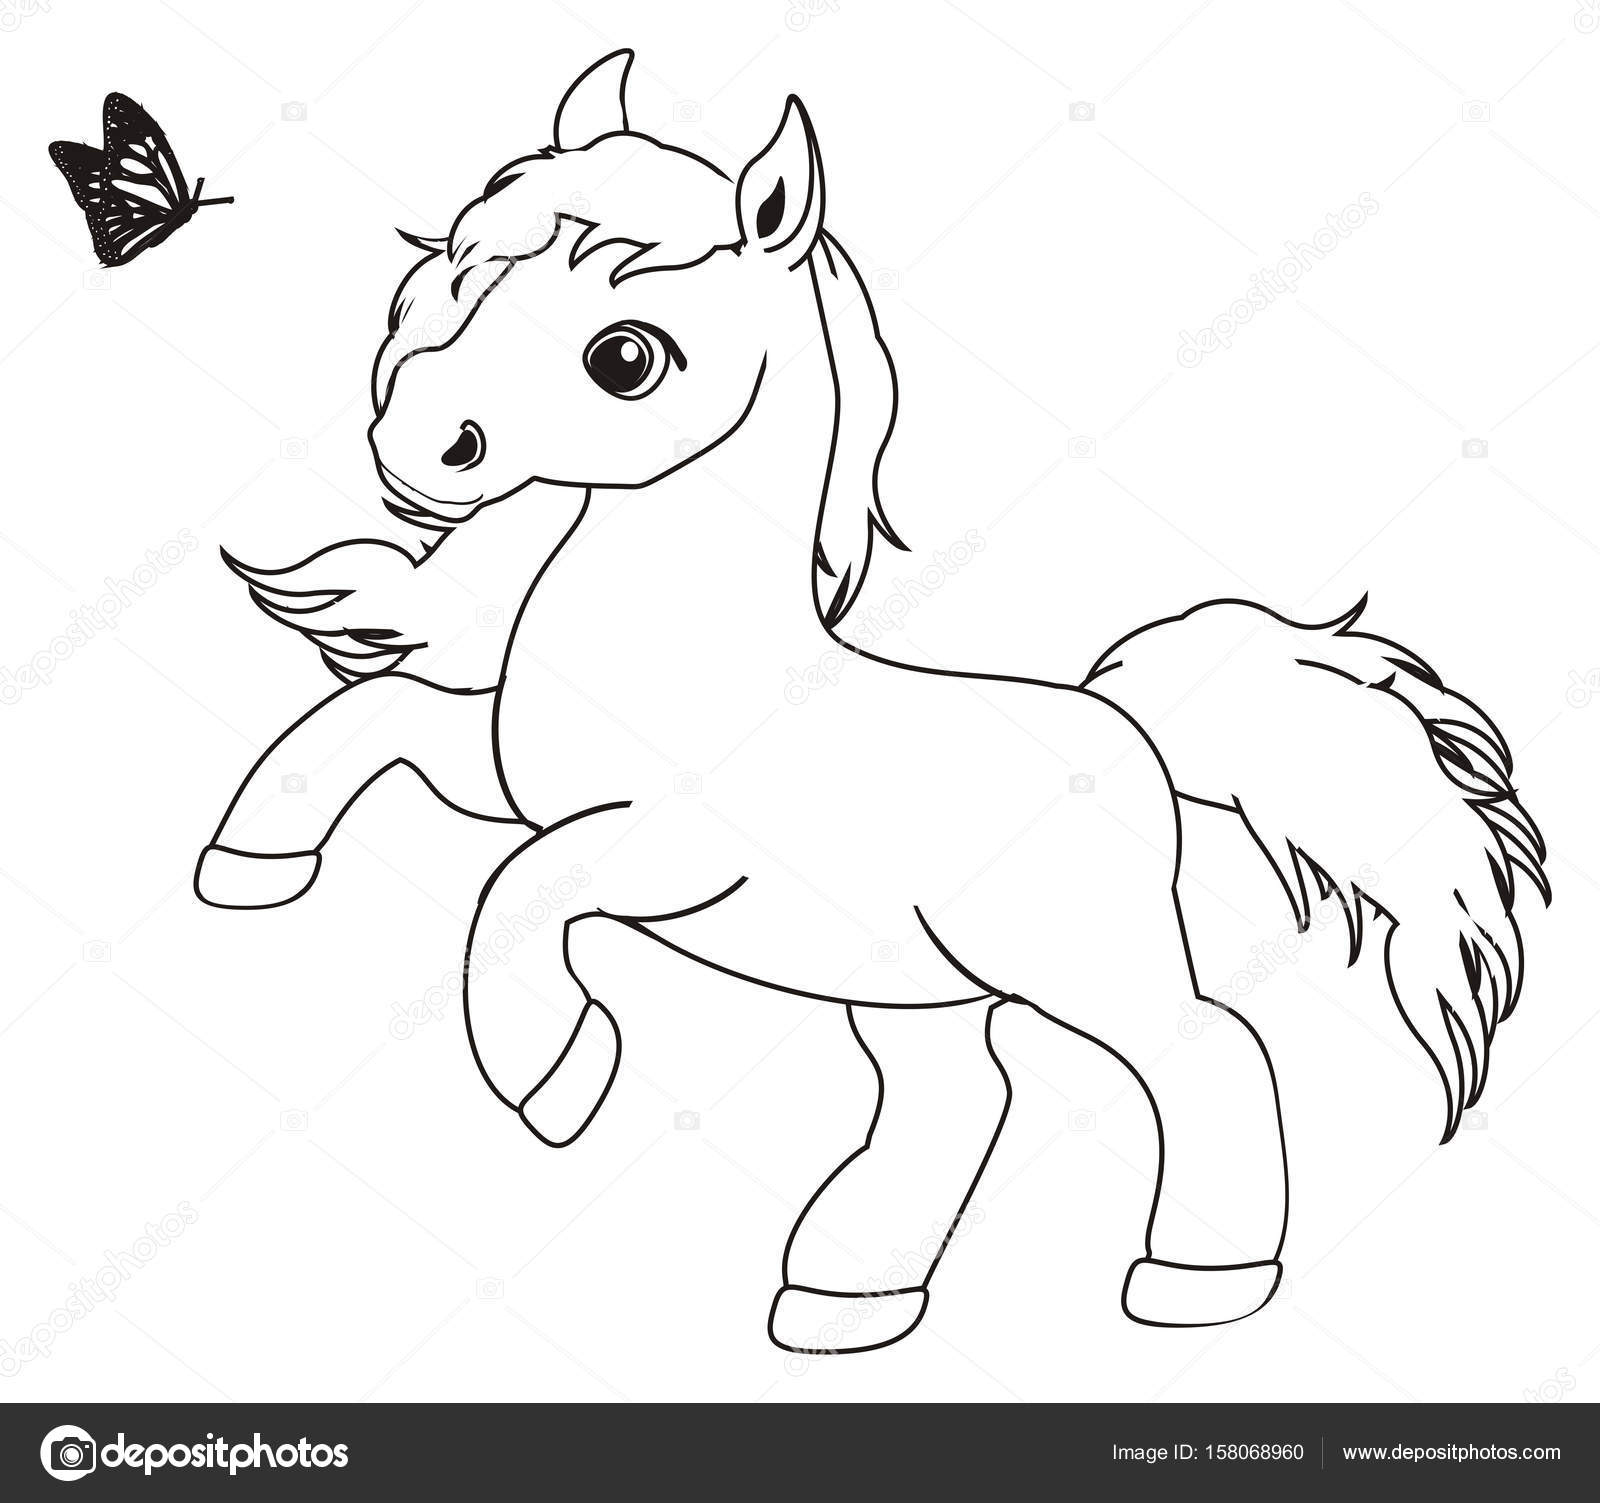 Coloriage Cheval Mignon.Coloriage Petit Cheval Mignon Photographie Tatty77tatty C 158068960